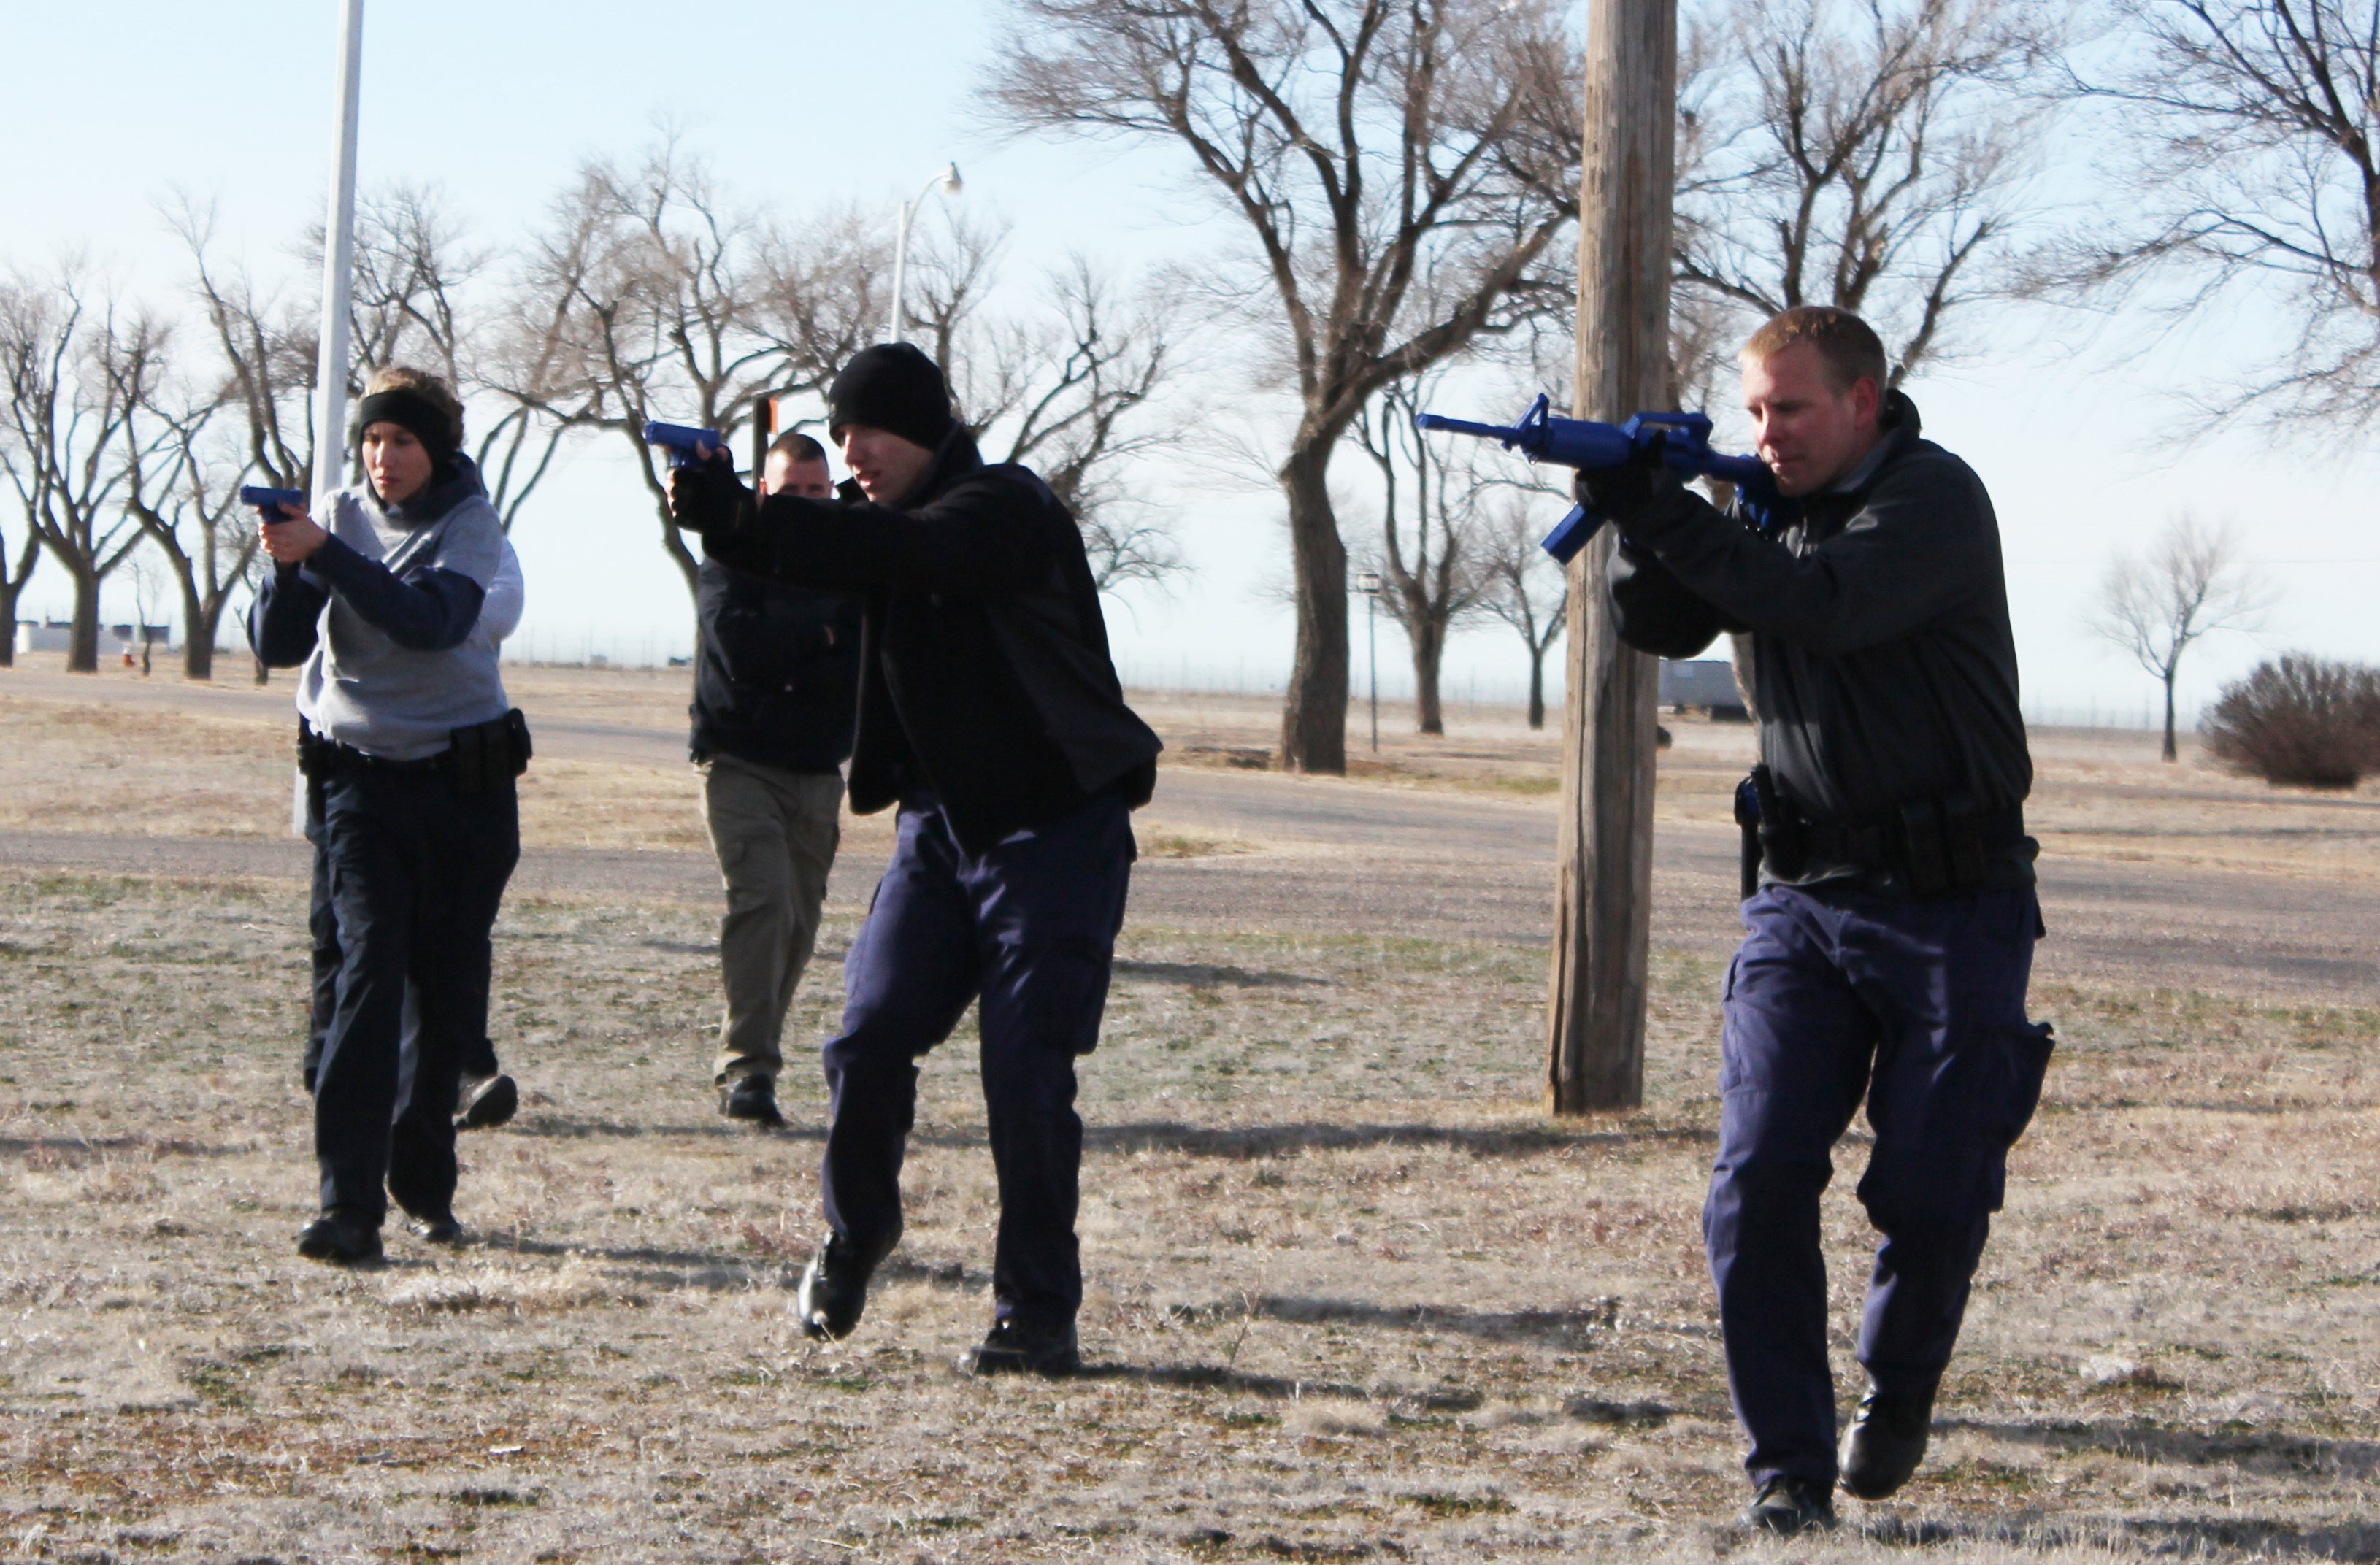 police academy in process of learning vital training procedures.